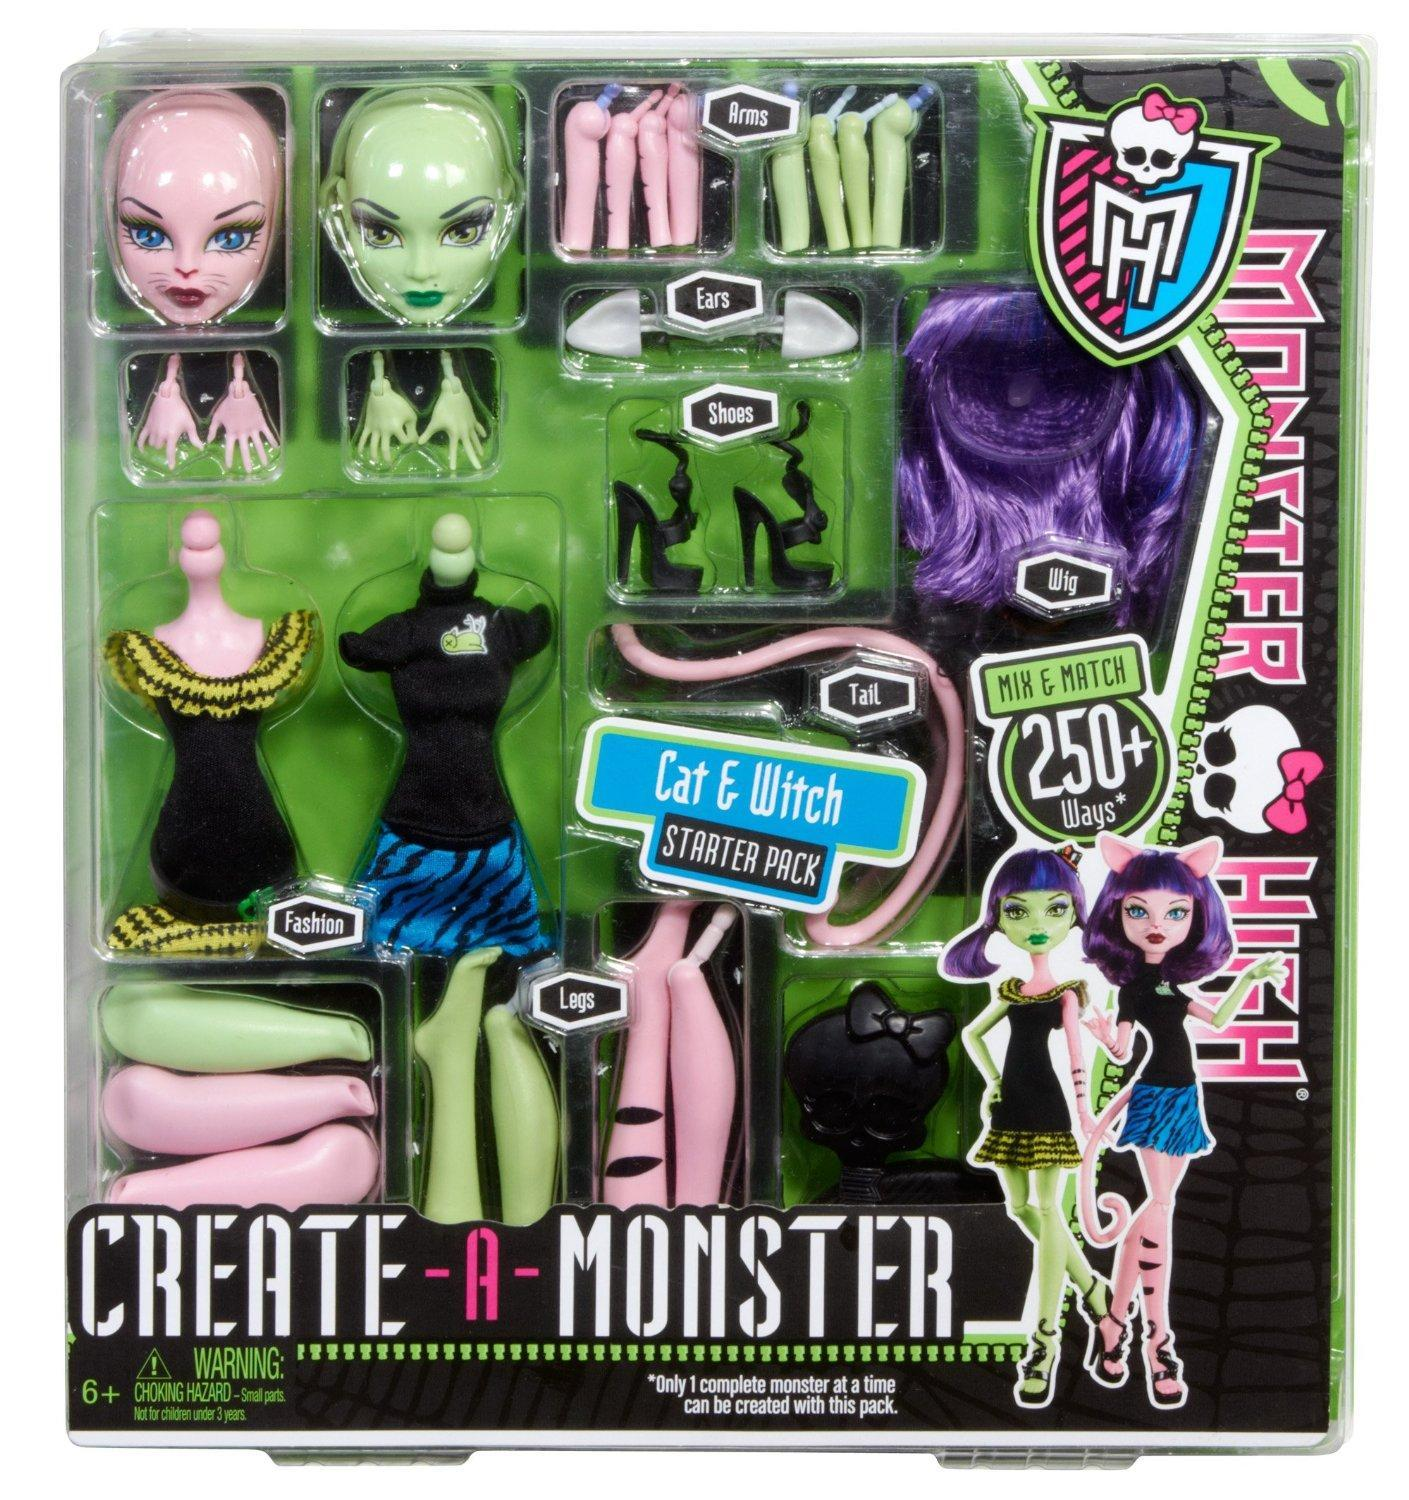 Monster High Avatar Creator Game - Play online at Y8.com